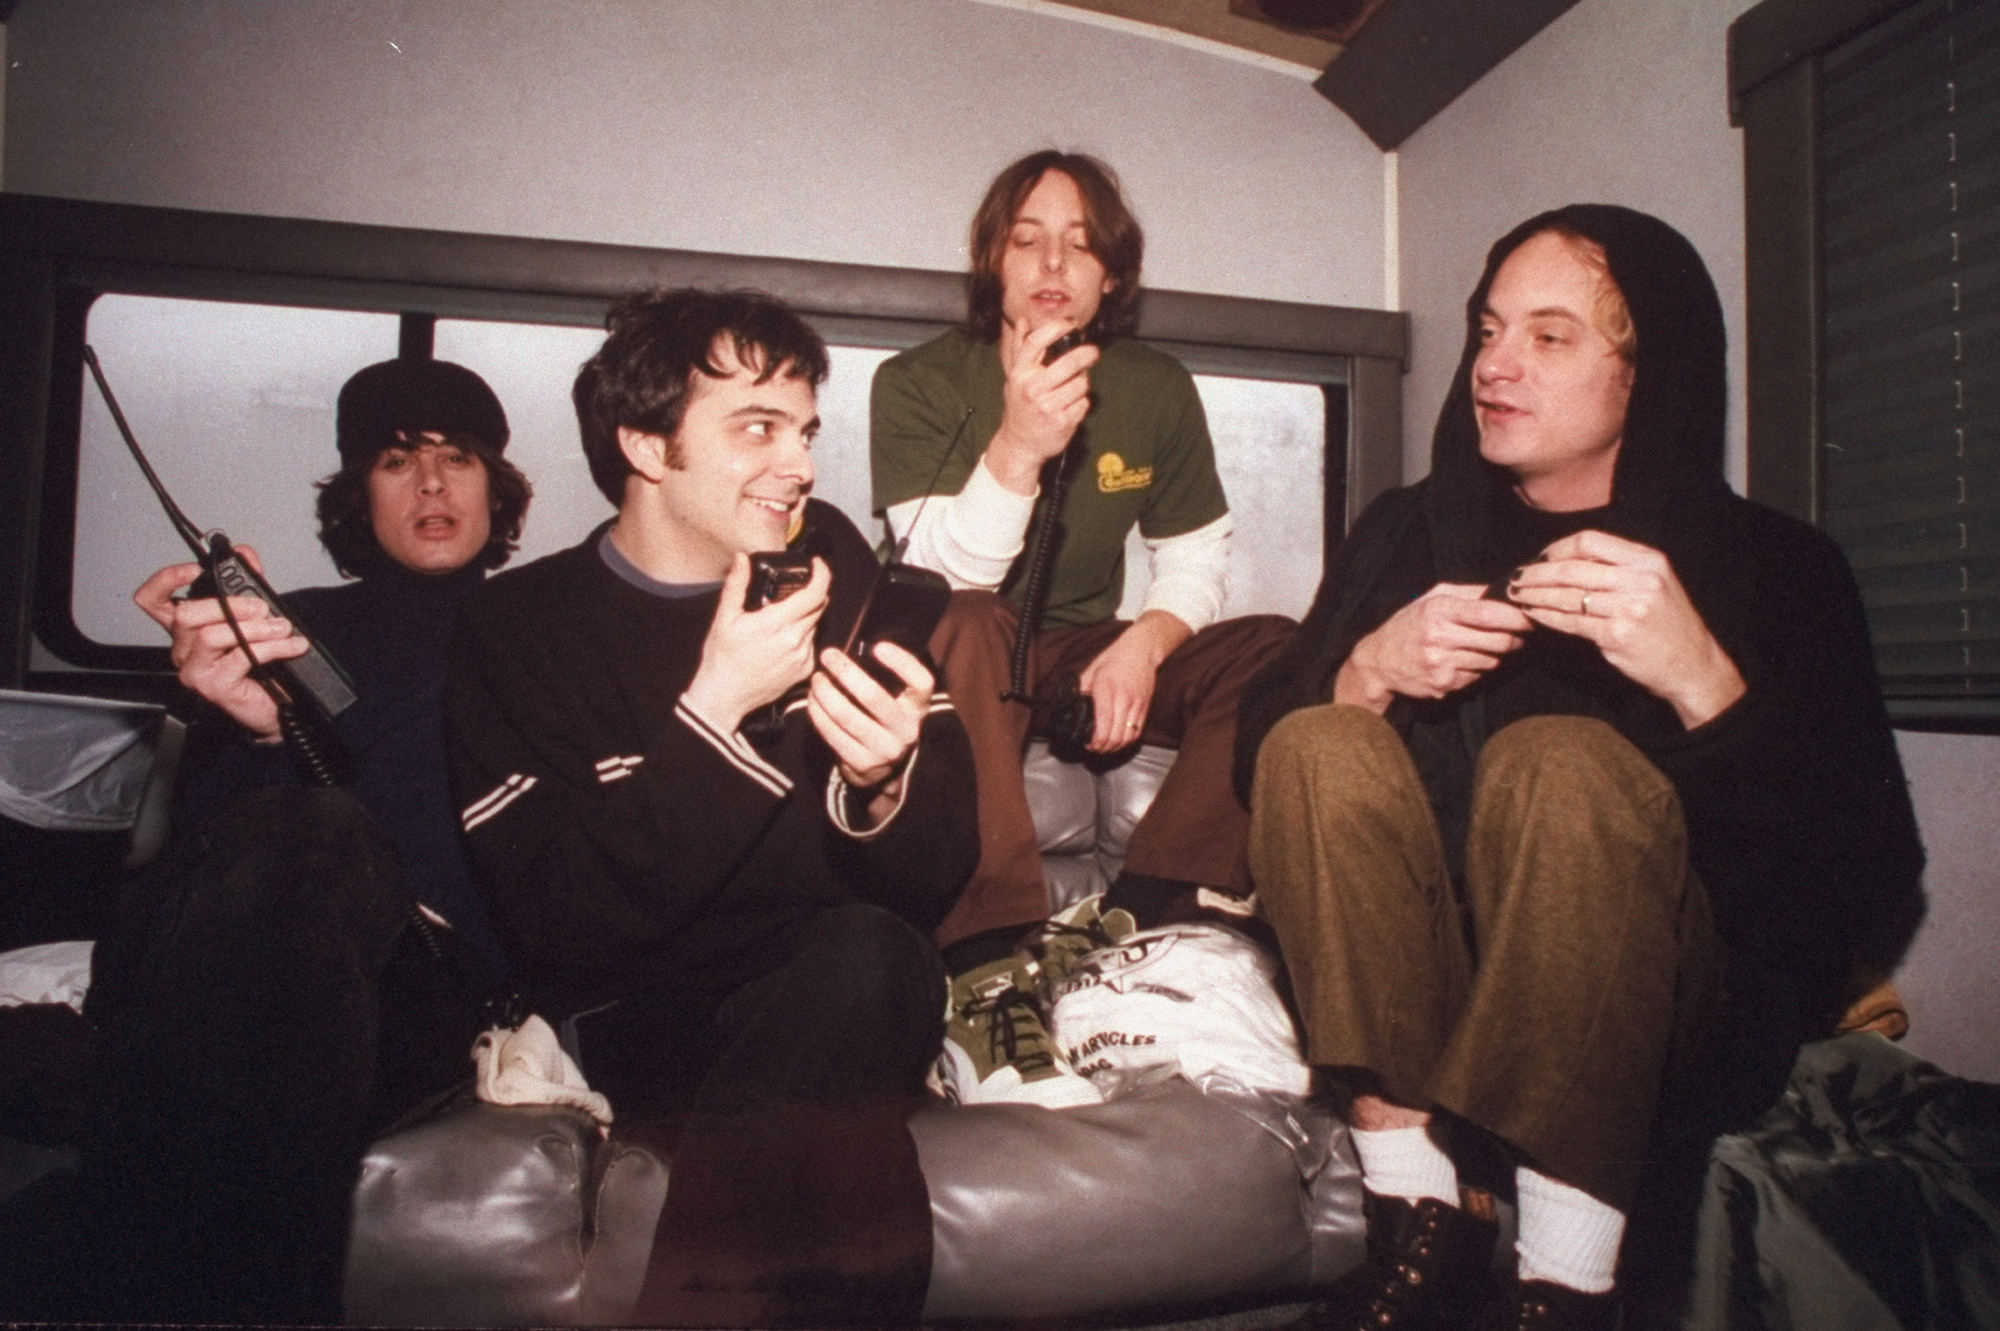 Musicians (L-R) Jody Porter, Adam Schlesinger, Brian Young and Chris Collingwood of the rock band Fountains of Wayne in there trailer. (Photo by Kimberly Butler/The LIFE Images Collection via Getty Images/Getty Images)